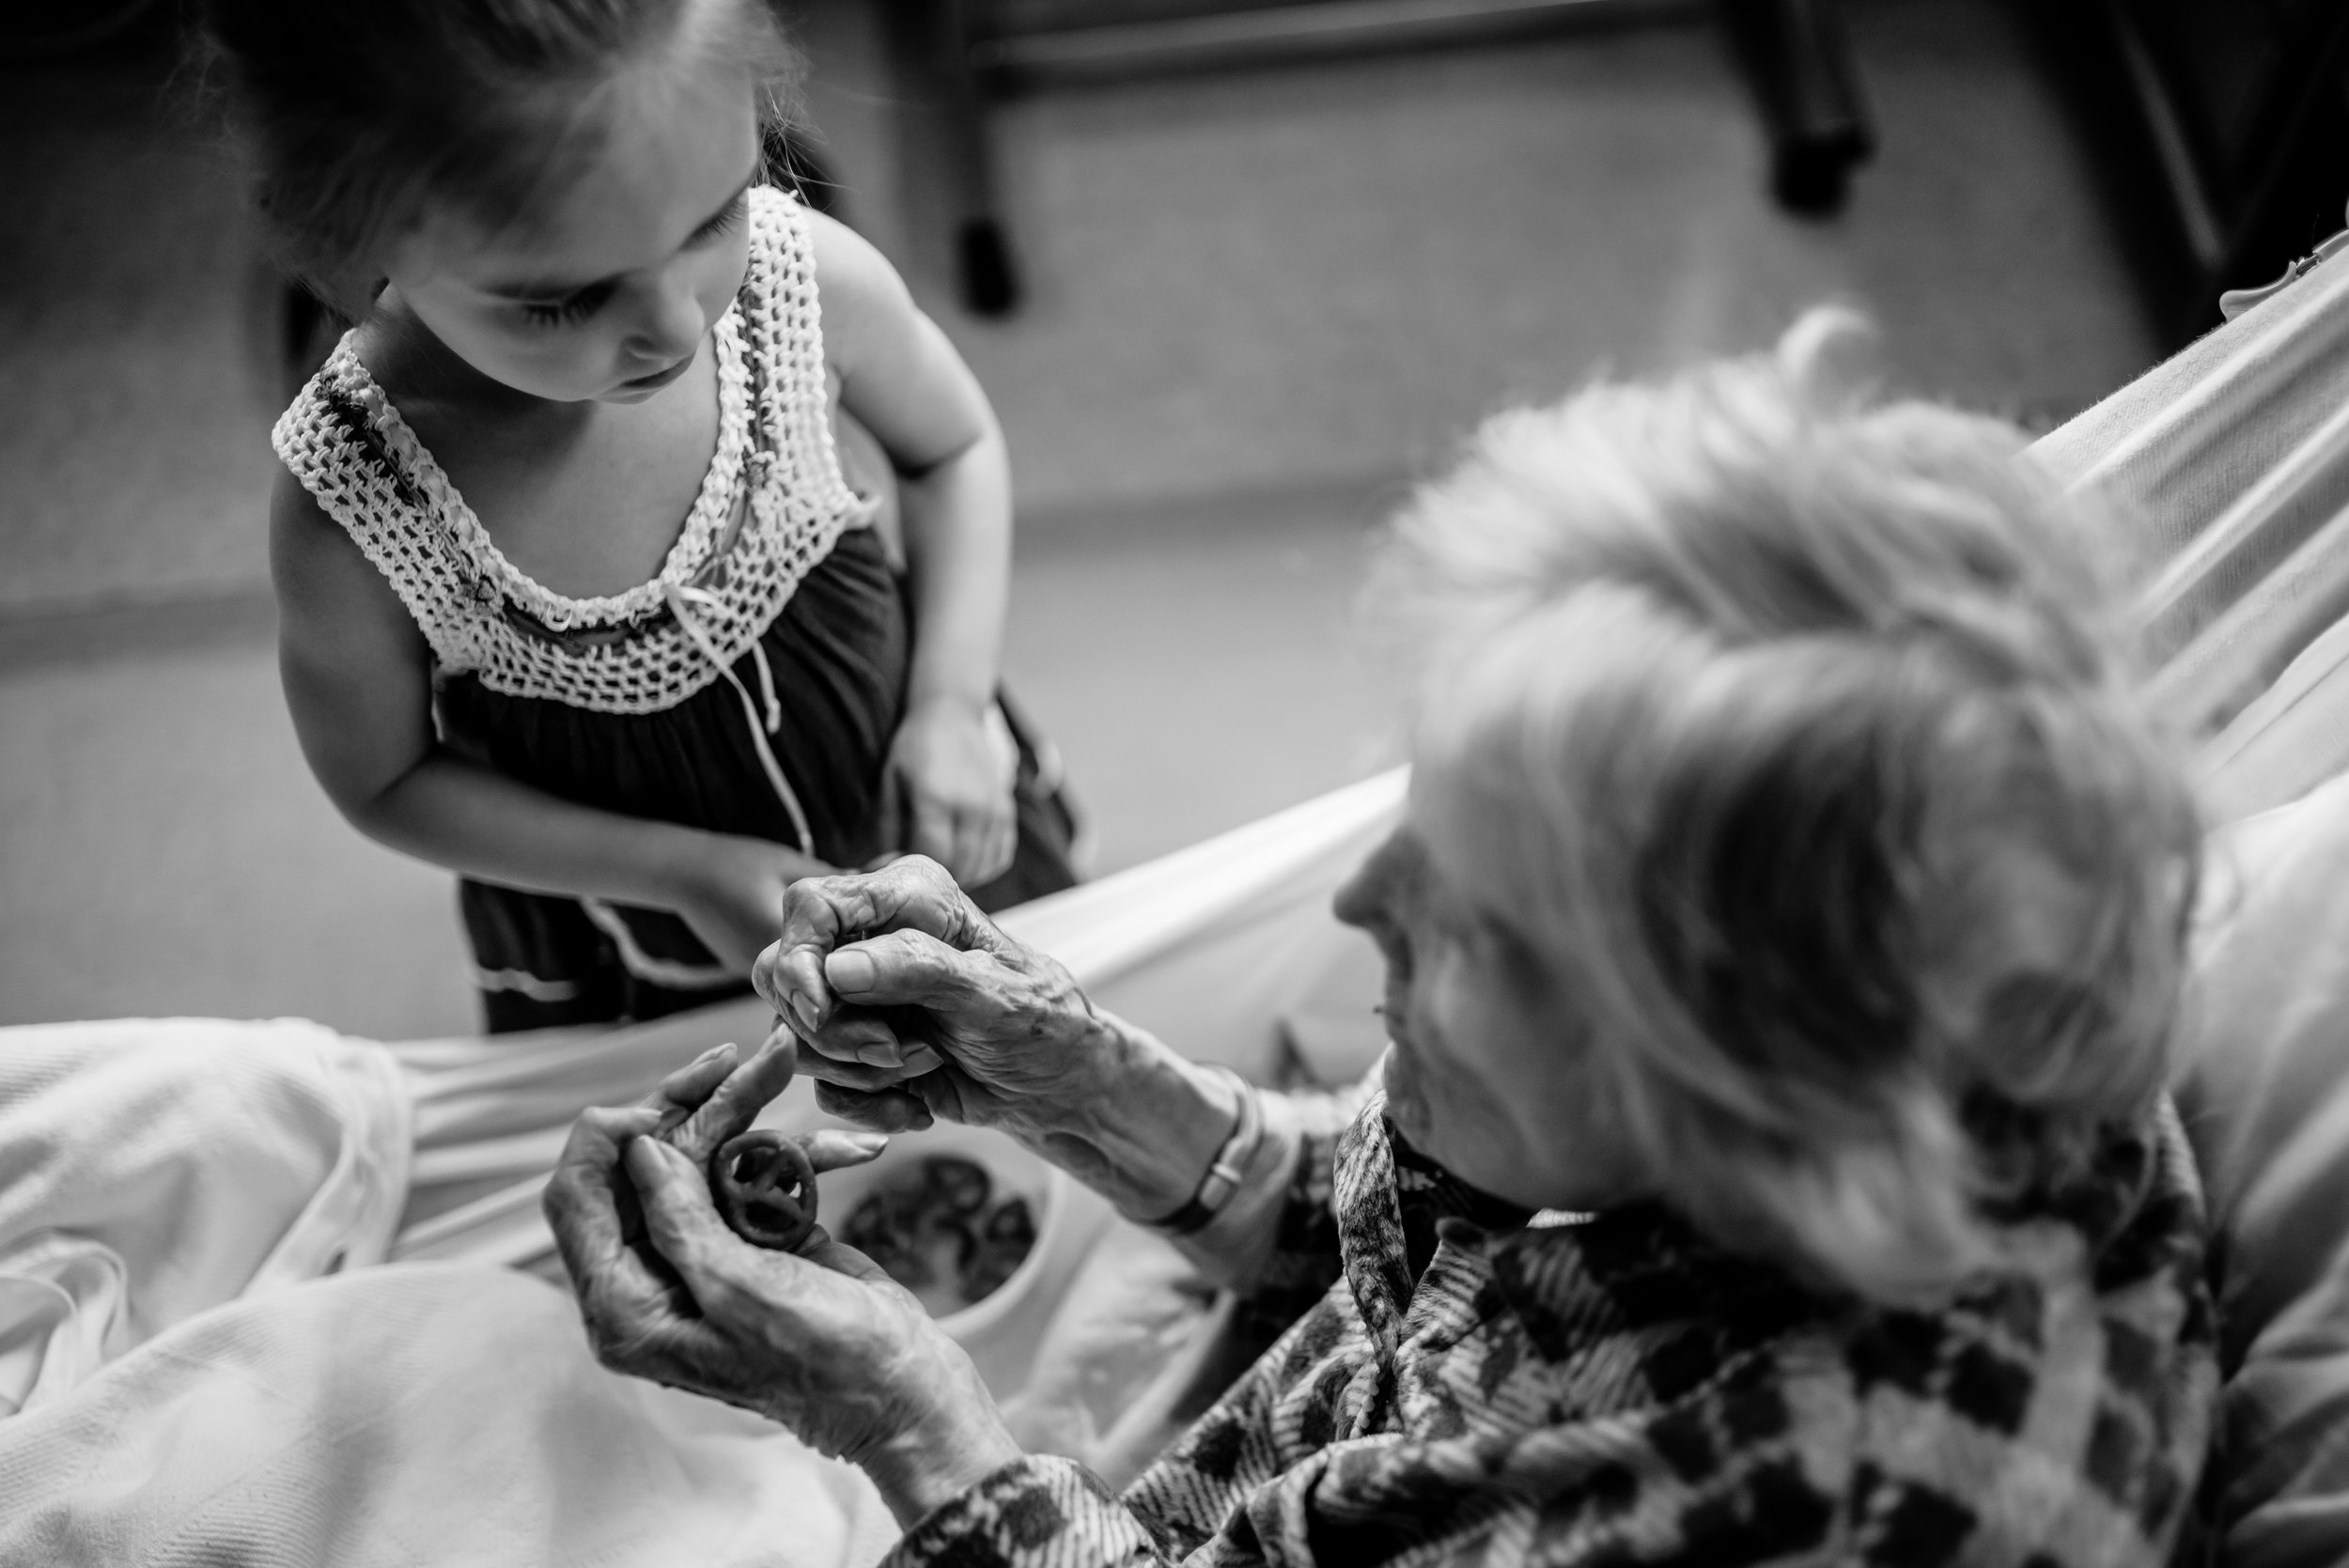 Girl looks at great-great-grandmother with pretzel in hand